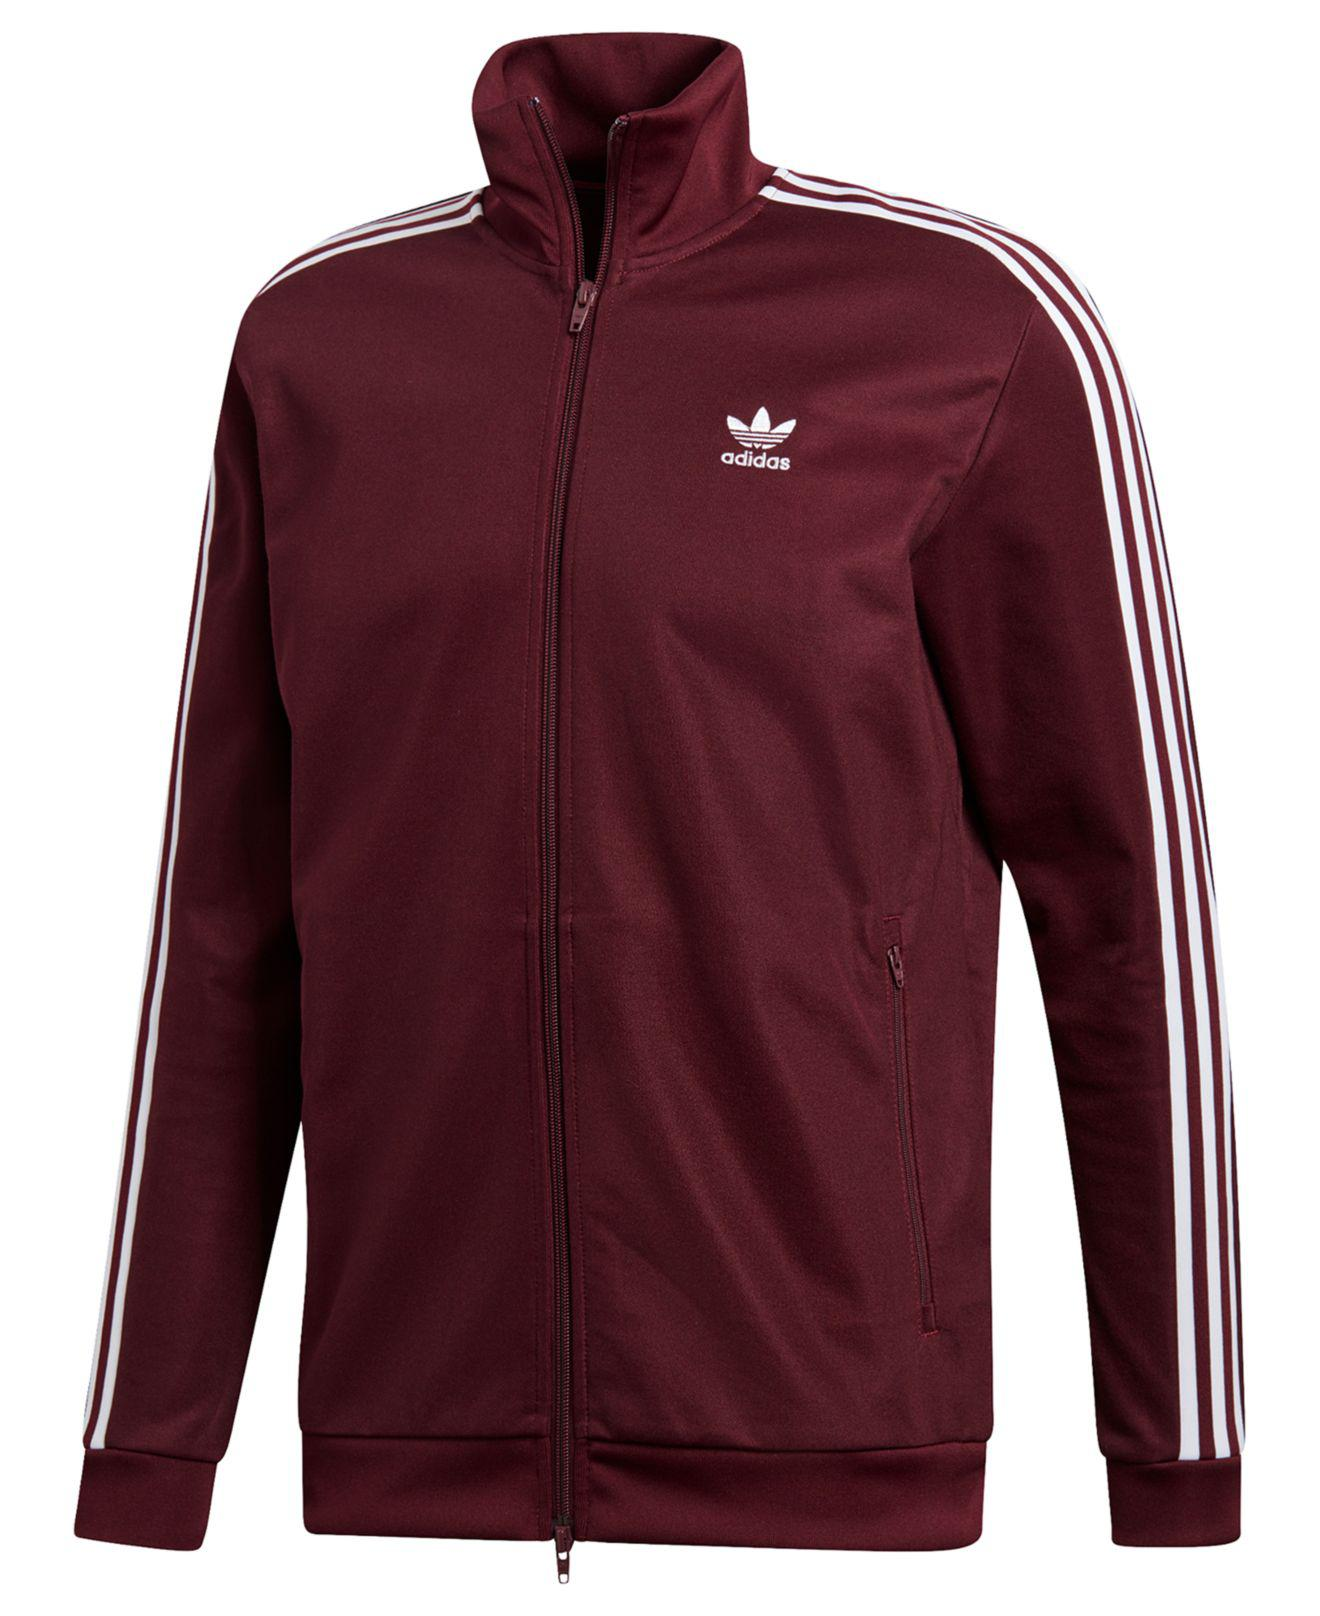 adidas Adicolor Beckenbauer Track Jacket in Red for Men